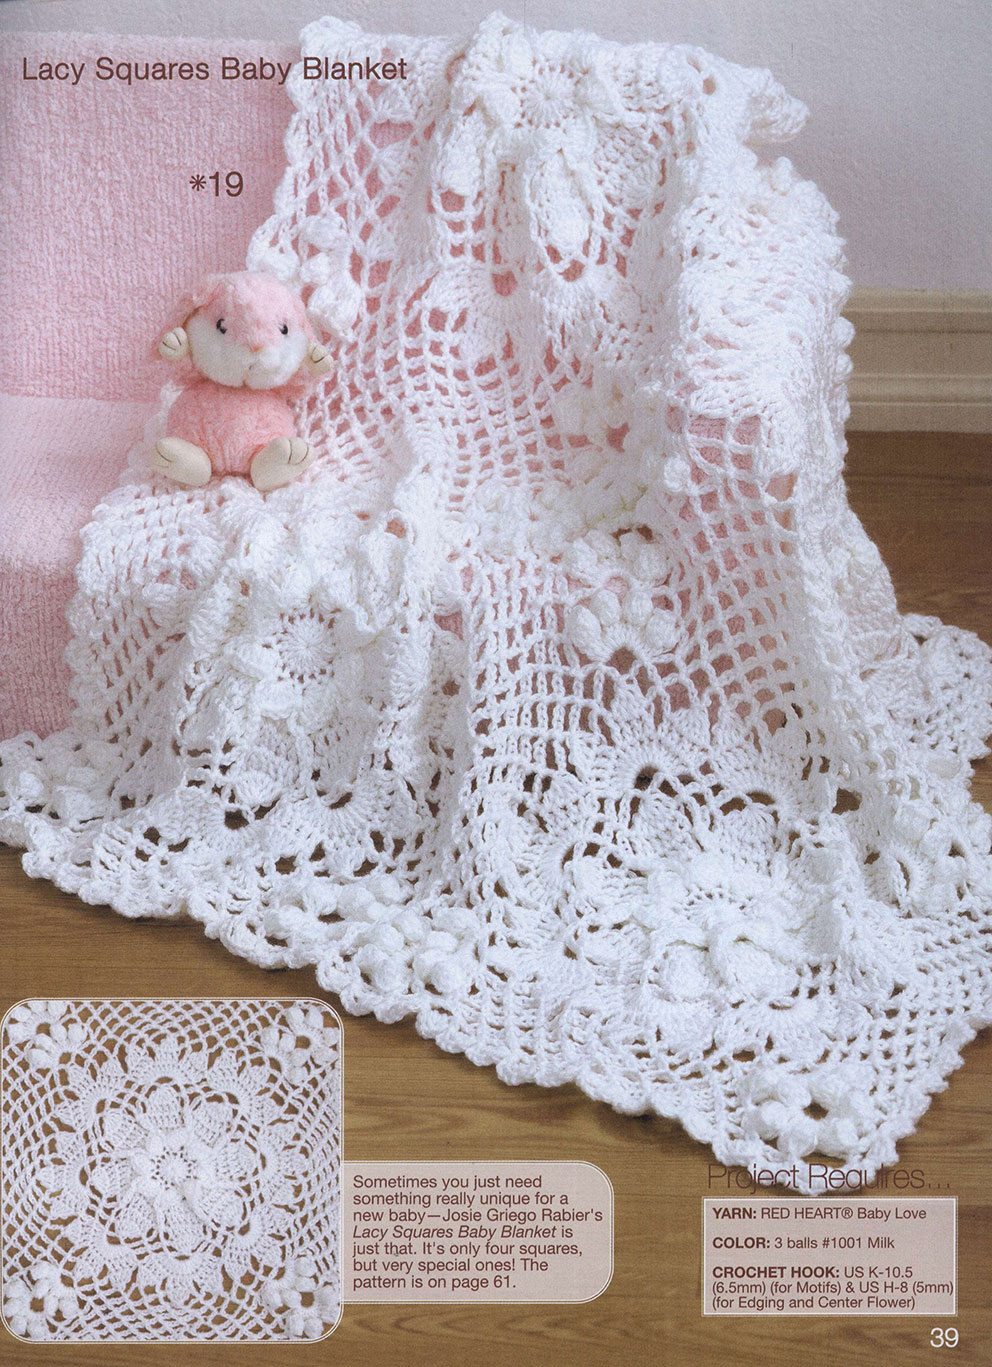 Bathroom sets for kids - Lace Squares Crochet Baby Blanket Crochet Kingdom